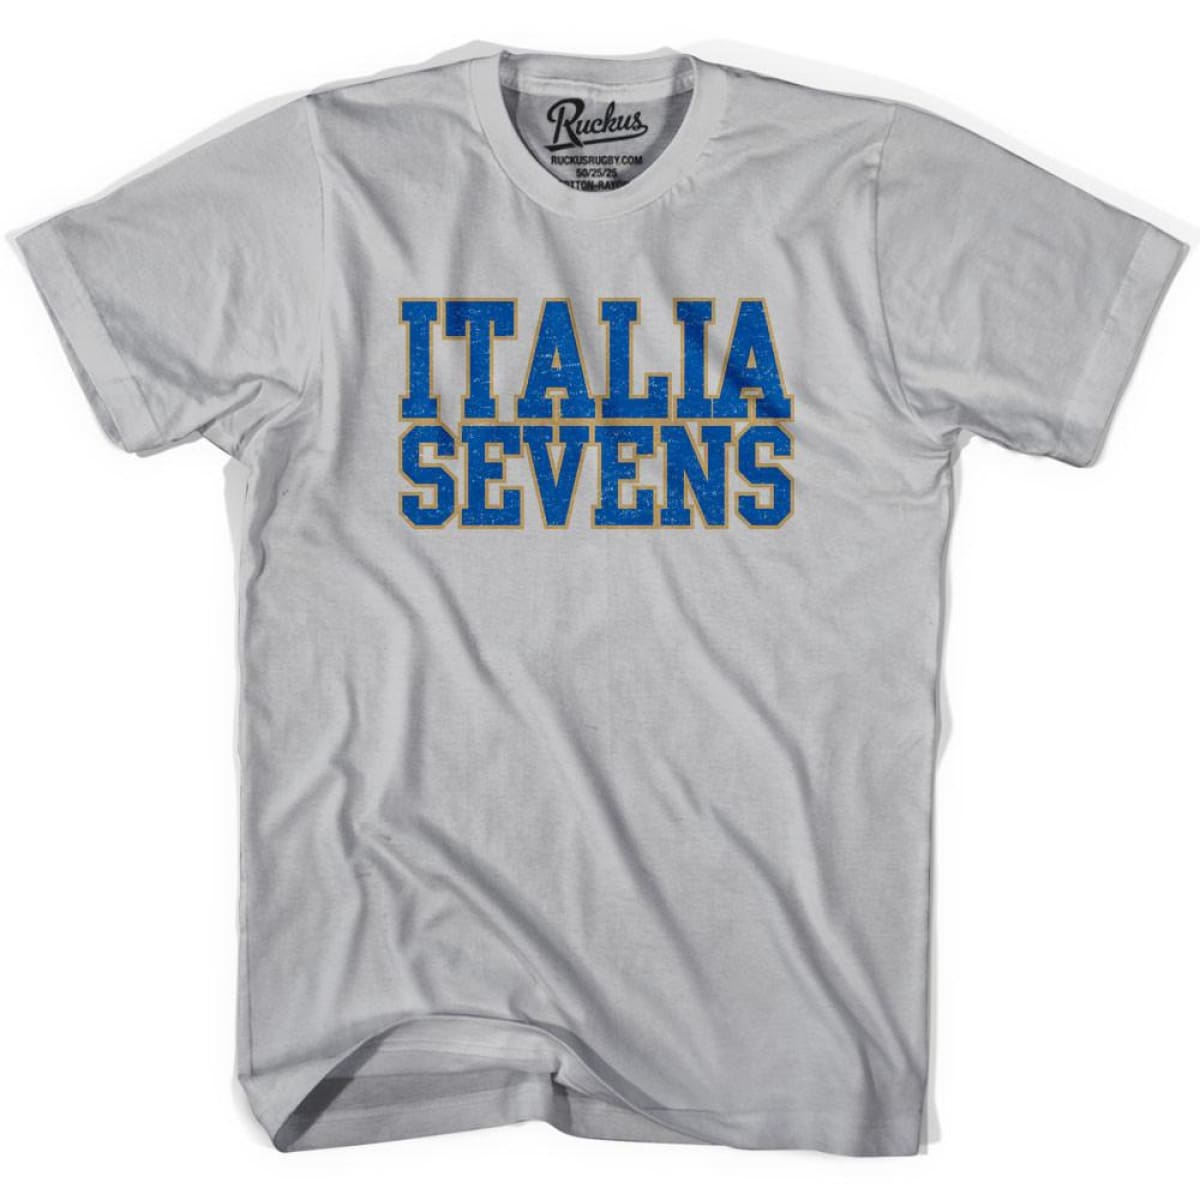 Italy Sevens Sevens Rugby T-shirt - Cool Grey / Youth X-Small - Rugby T-shirt